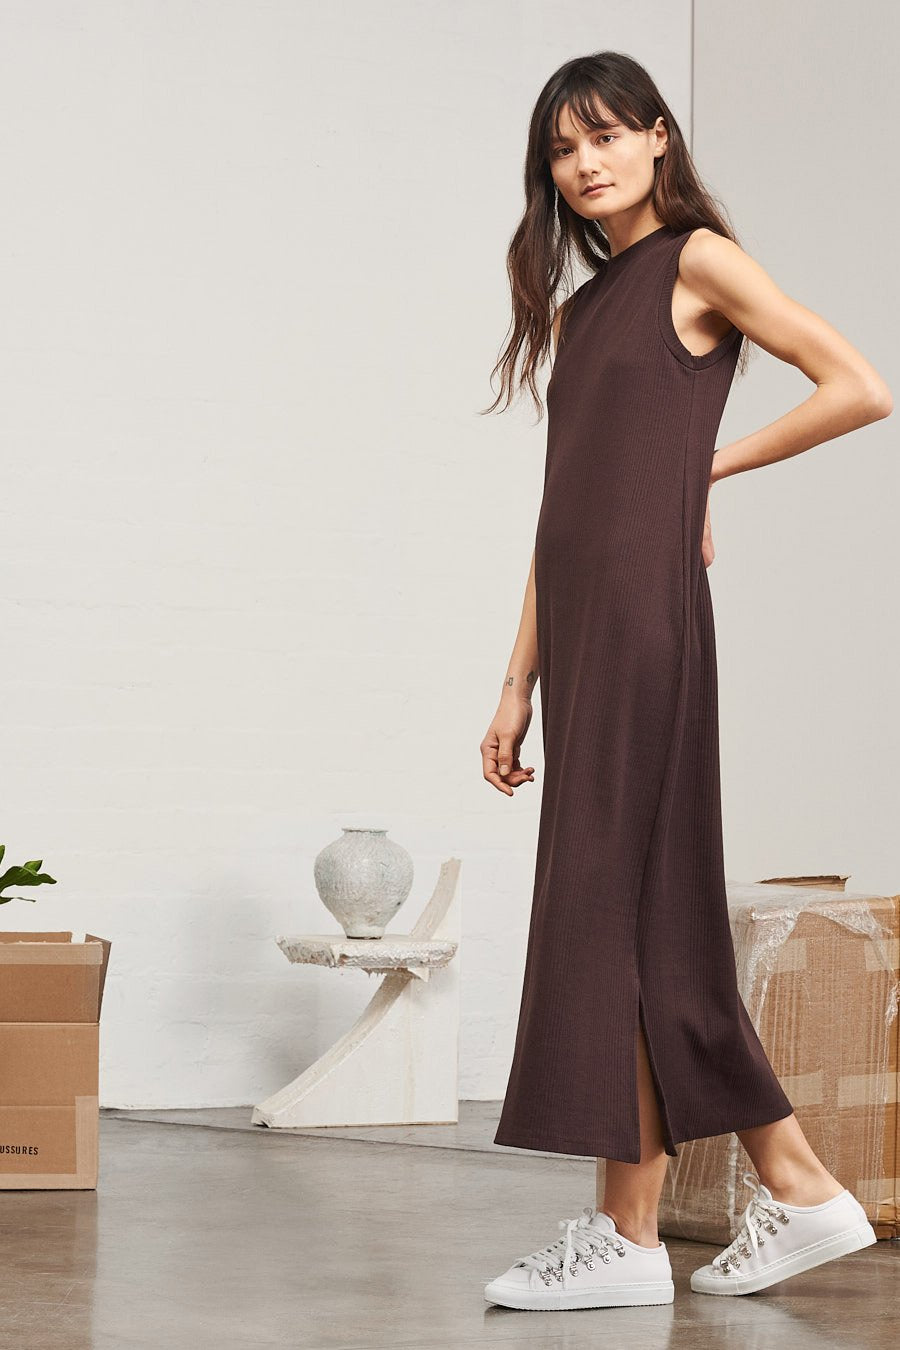 Kowtow stockists building block ladder rib long tank dress red and chocolate Organic Fairtrade Ethical